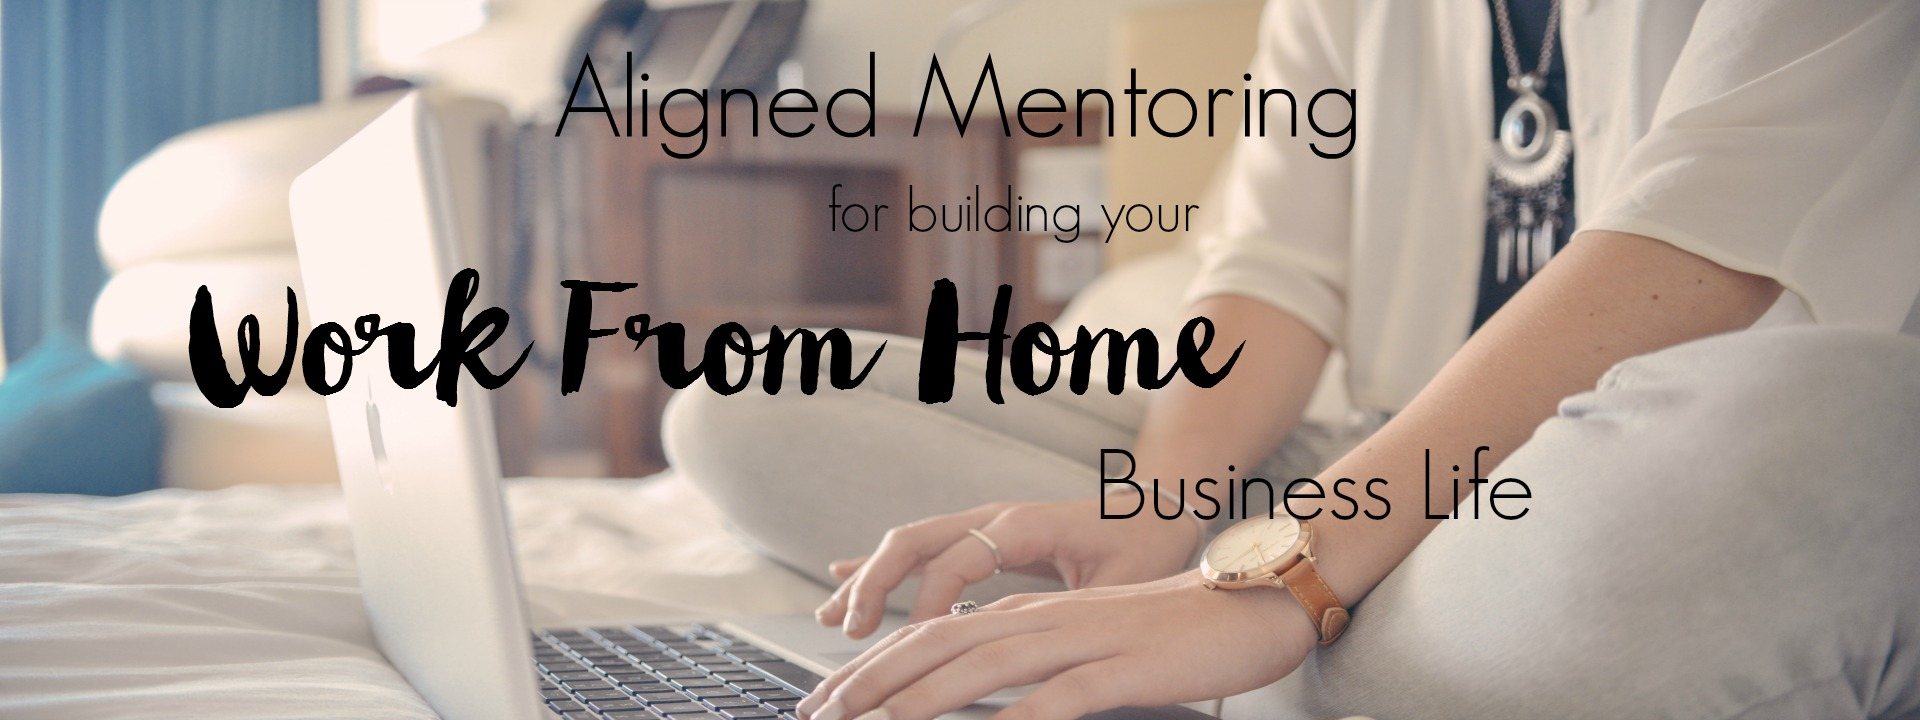 Aligned Mentoring For Building Your Work From Home Business Life